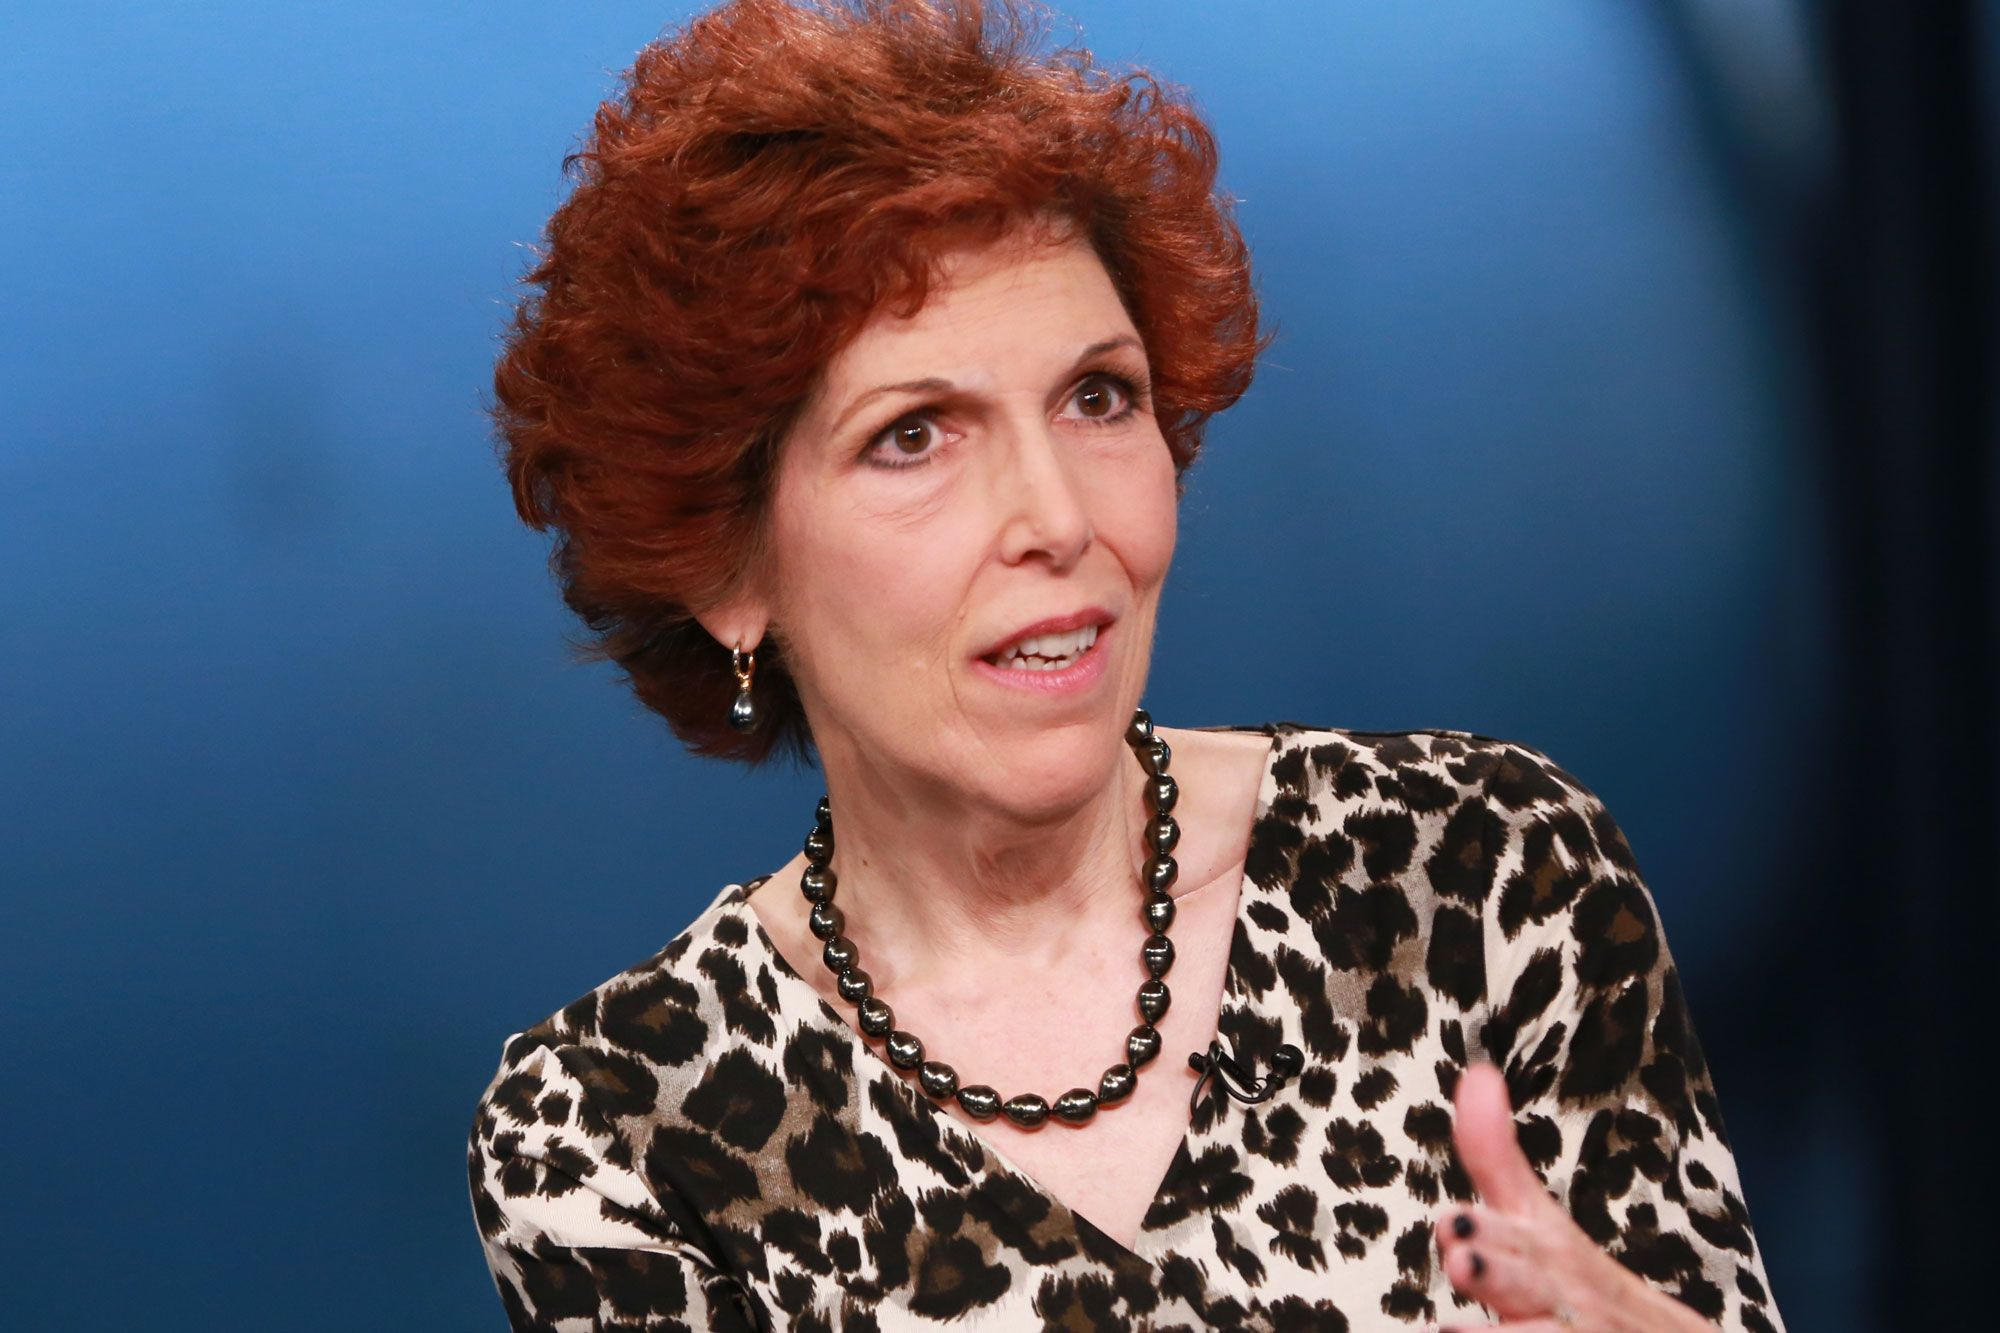 Fed's Mester says she fully supports the central bank's patient stance